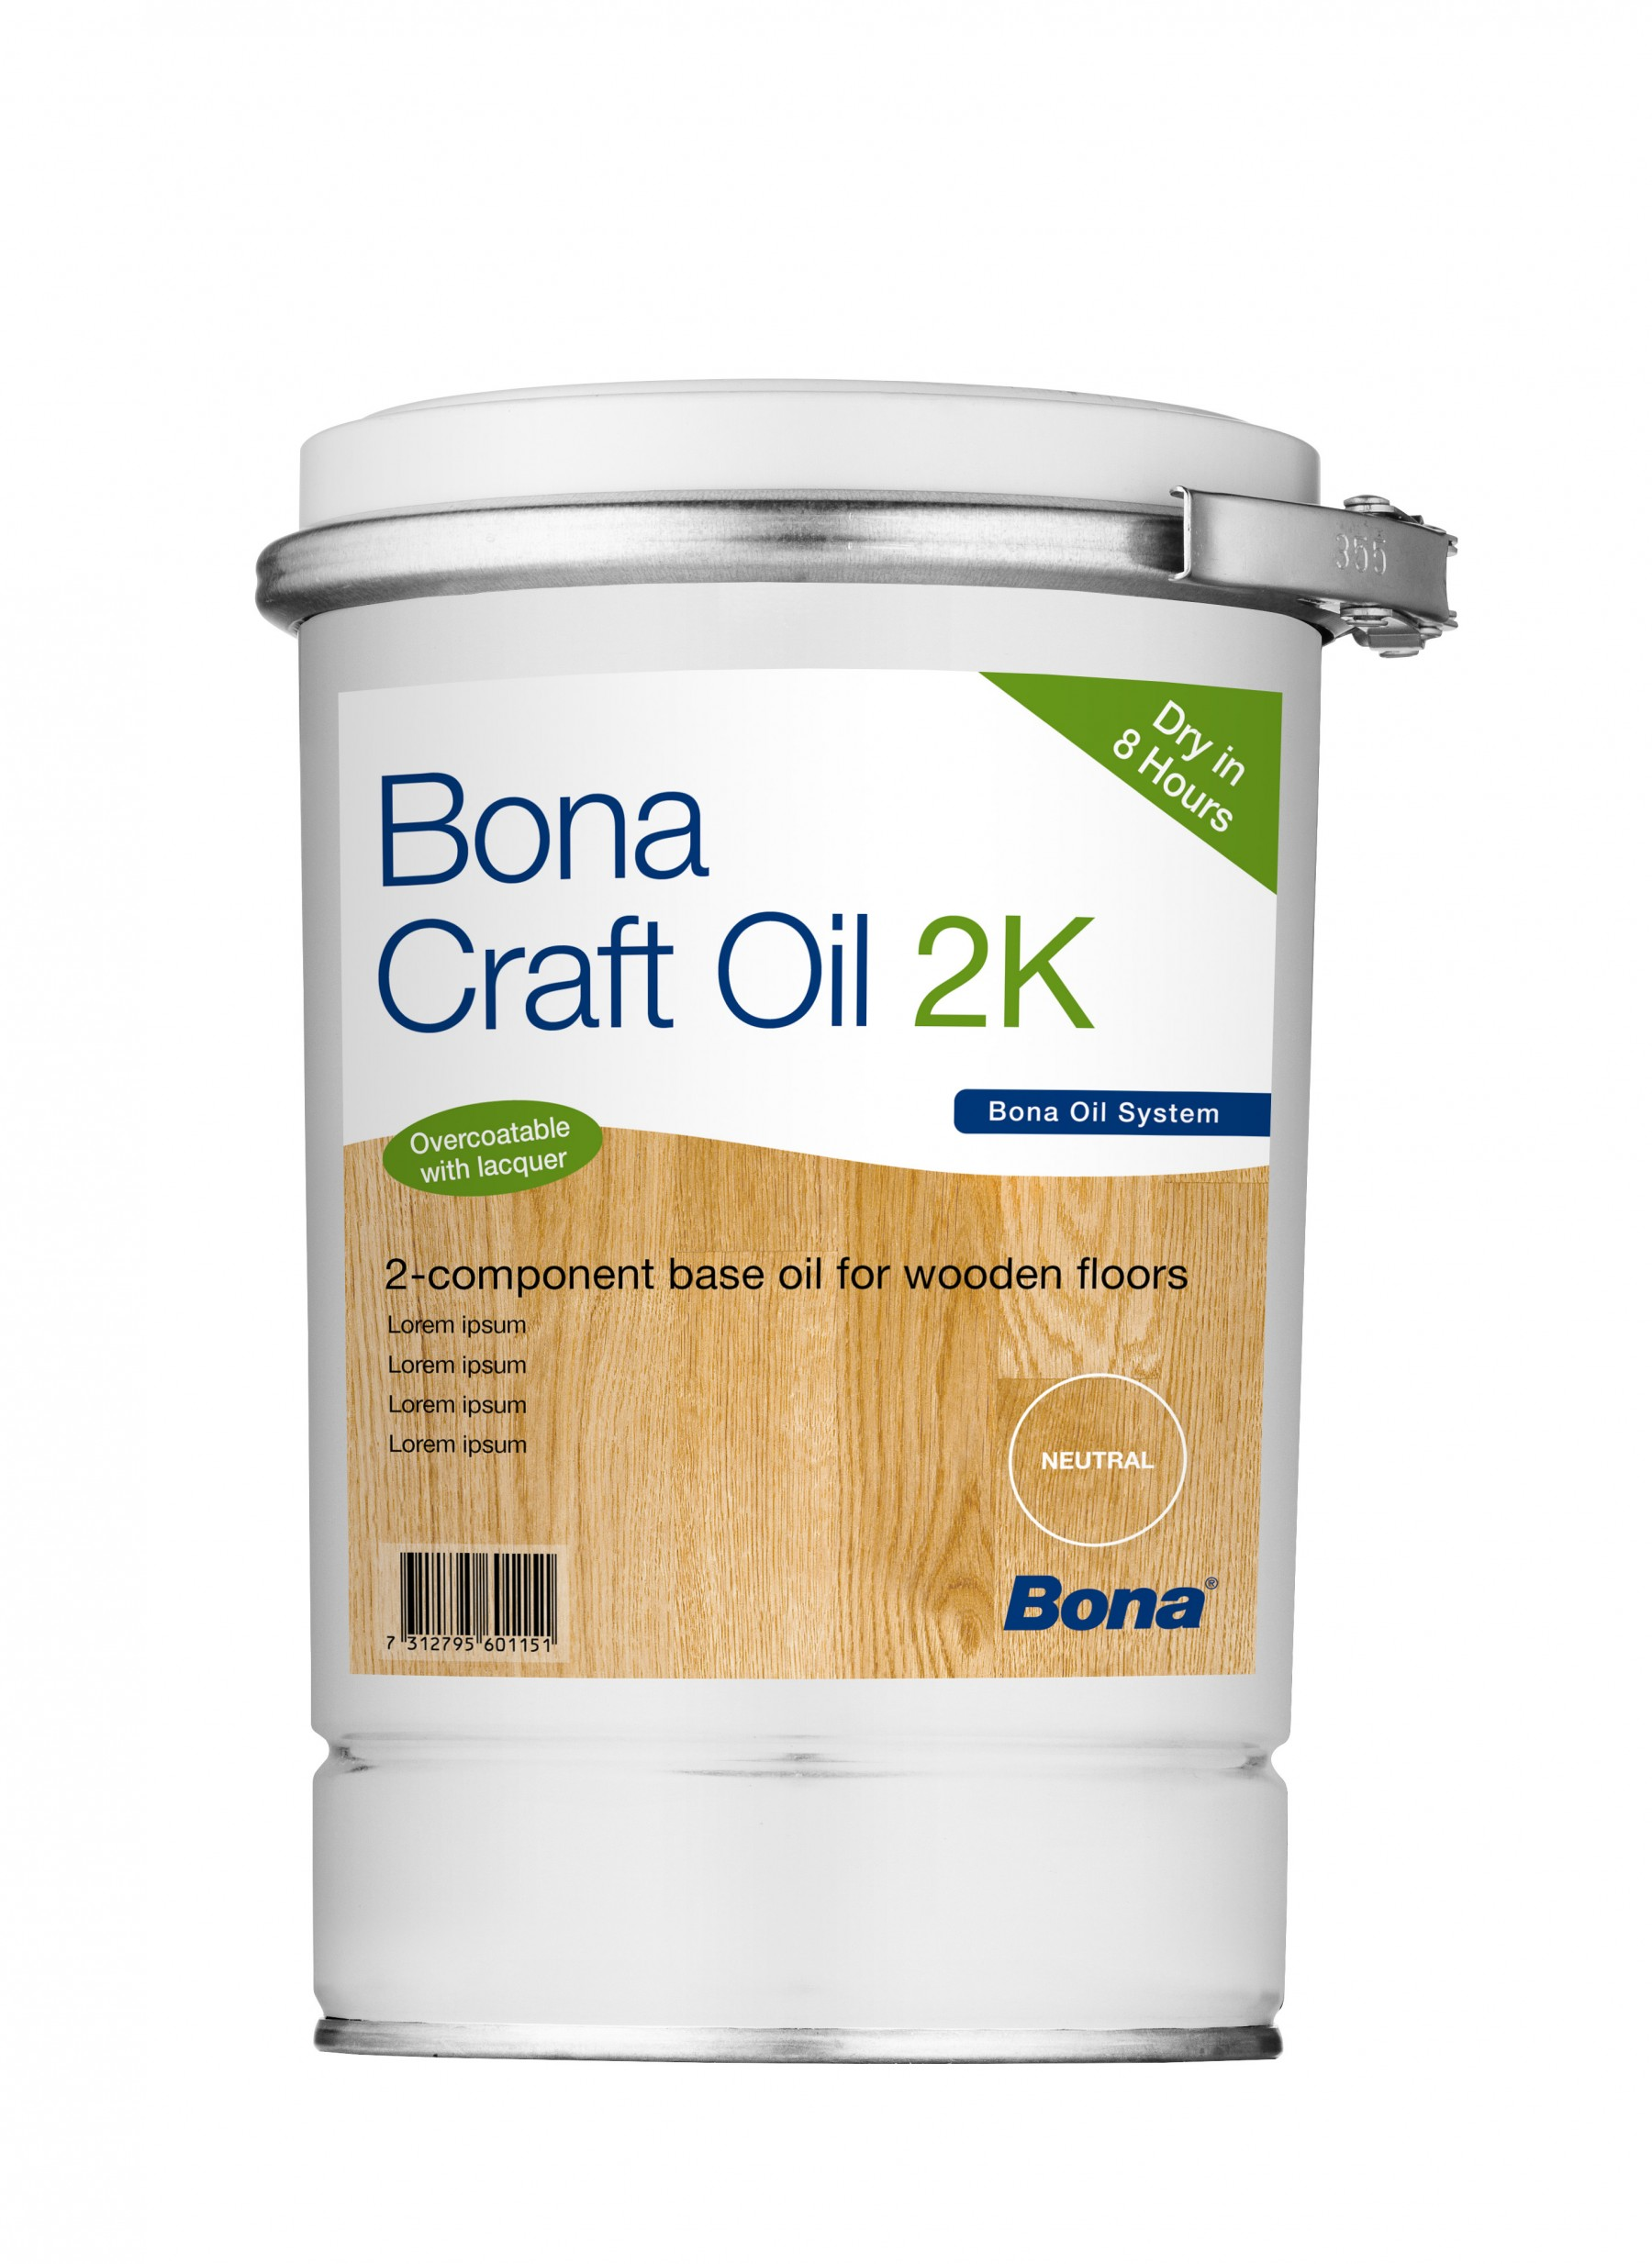 Bona Craft Oil 2K Umbra (Mahogany/Teak) 1,25L